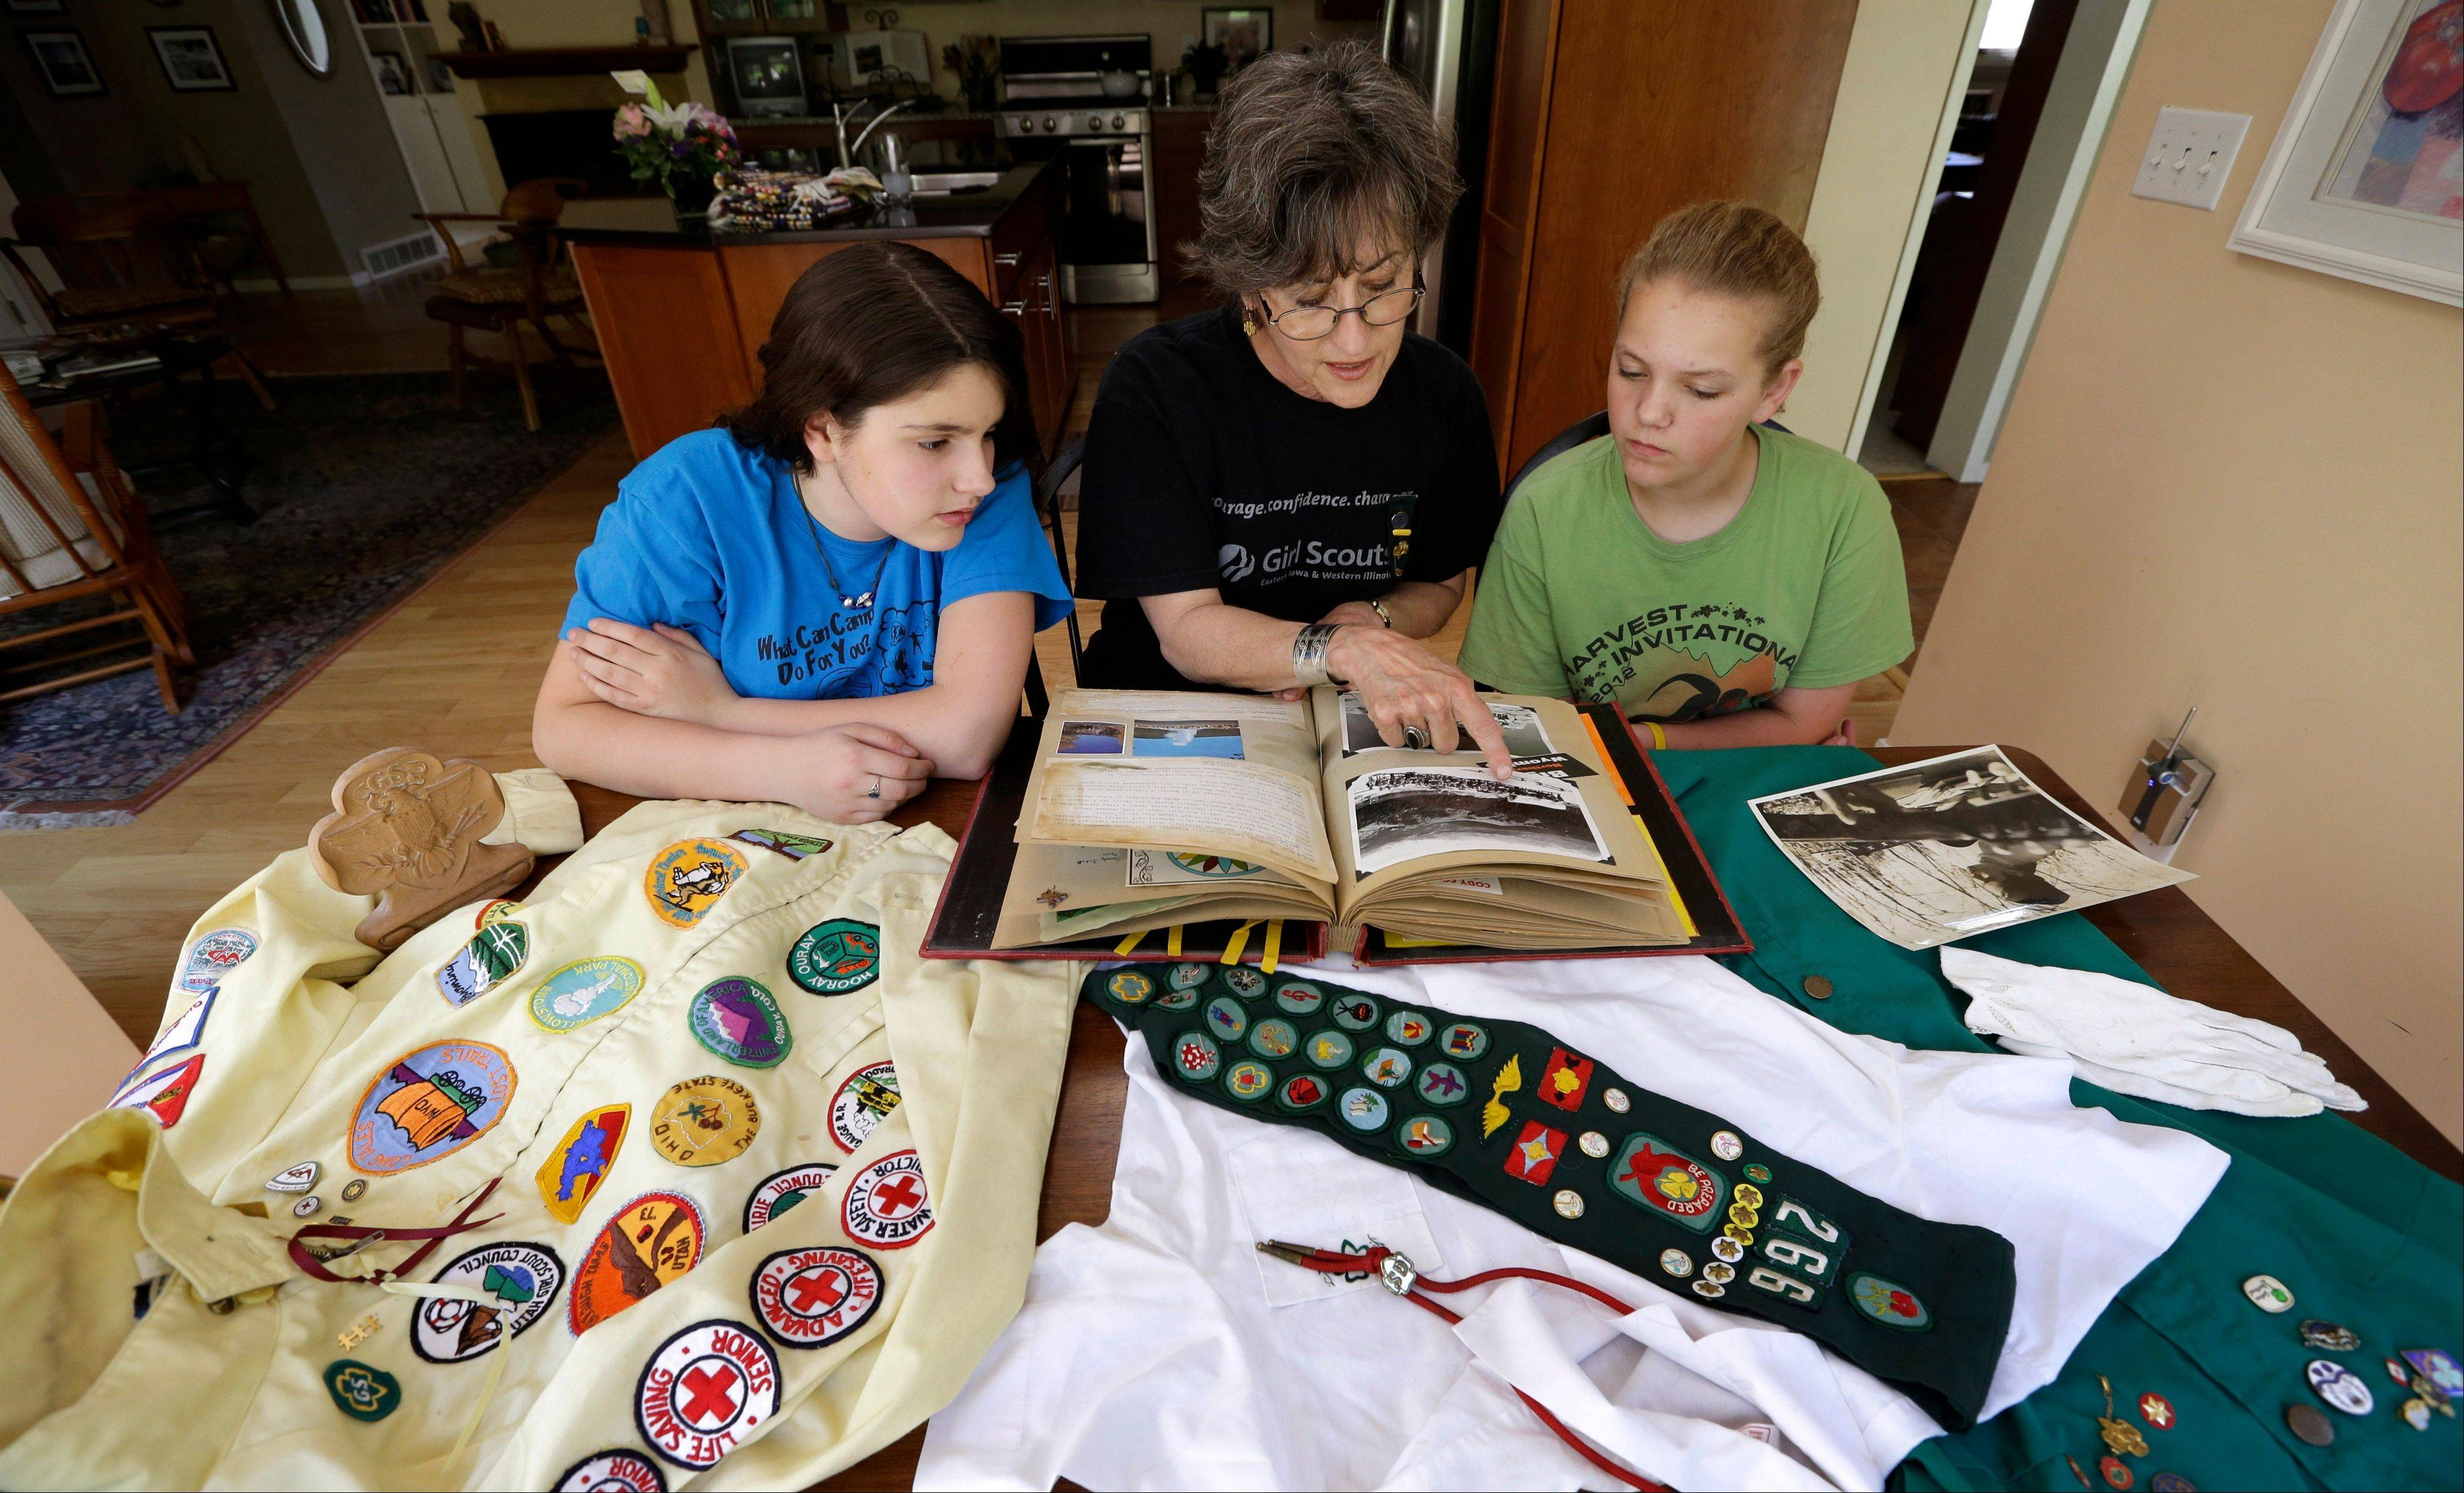 In this Tuesday, May 14, 2013 photo, Joni Kinsey, of Iowa City, Iowa, shows some of her Girl Scouts memorabilia to two girls in her troop in Iowa City, Iowa. In an effort to save money, Girl Scout councils across the country are making proposals that would have been unthinkable a generation ago: selling summer camps that date back to the 1950s.